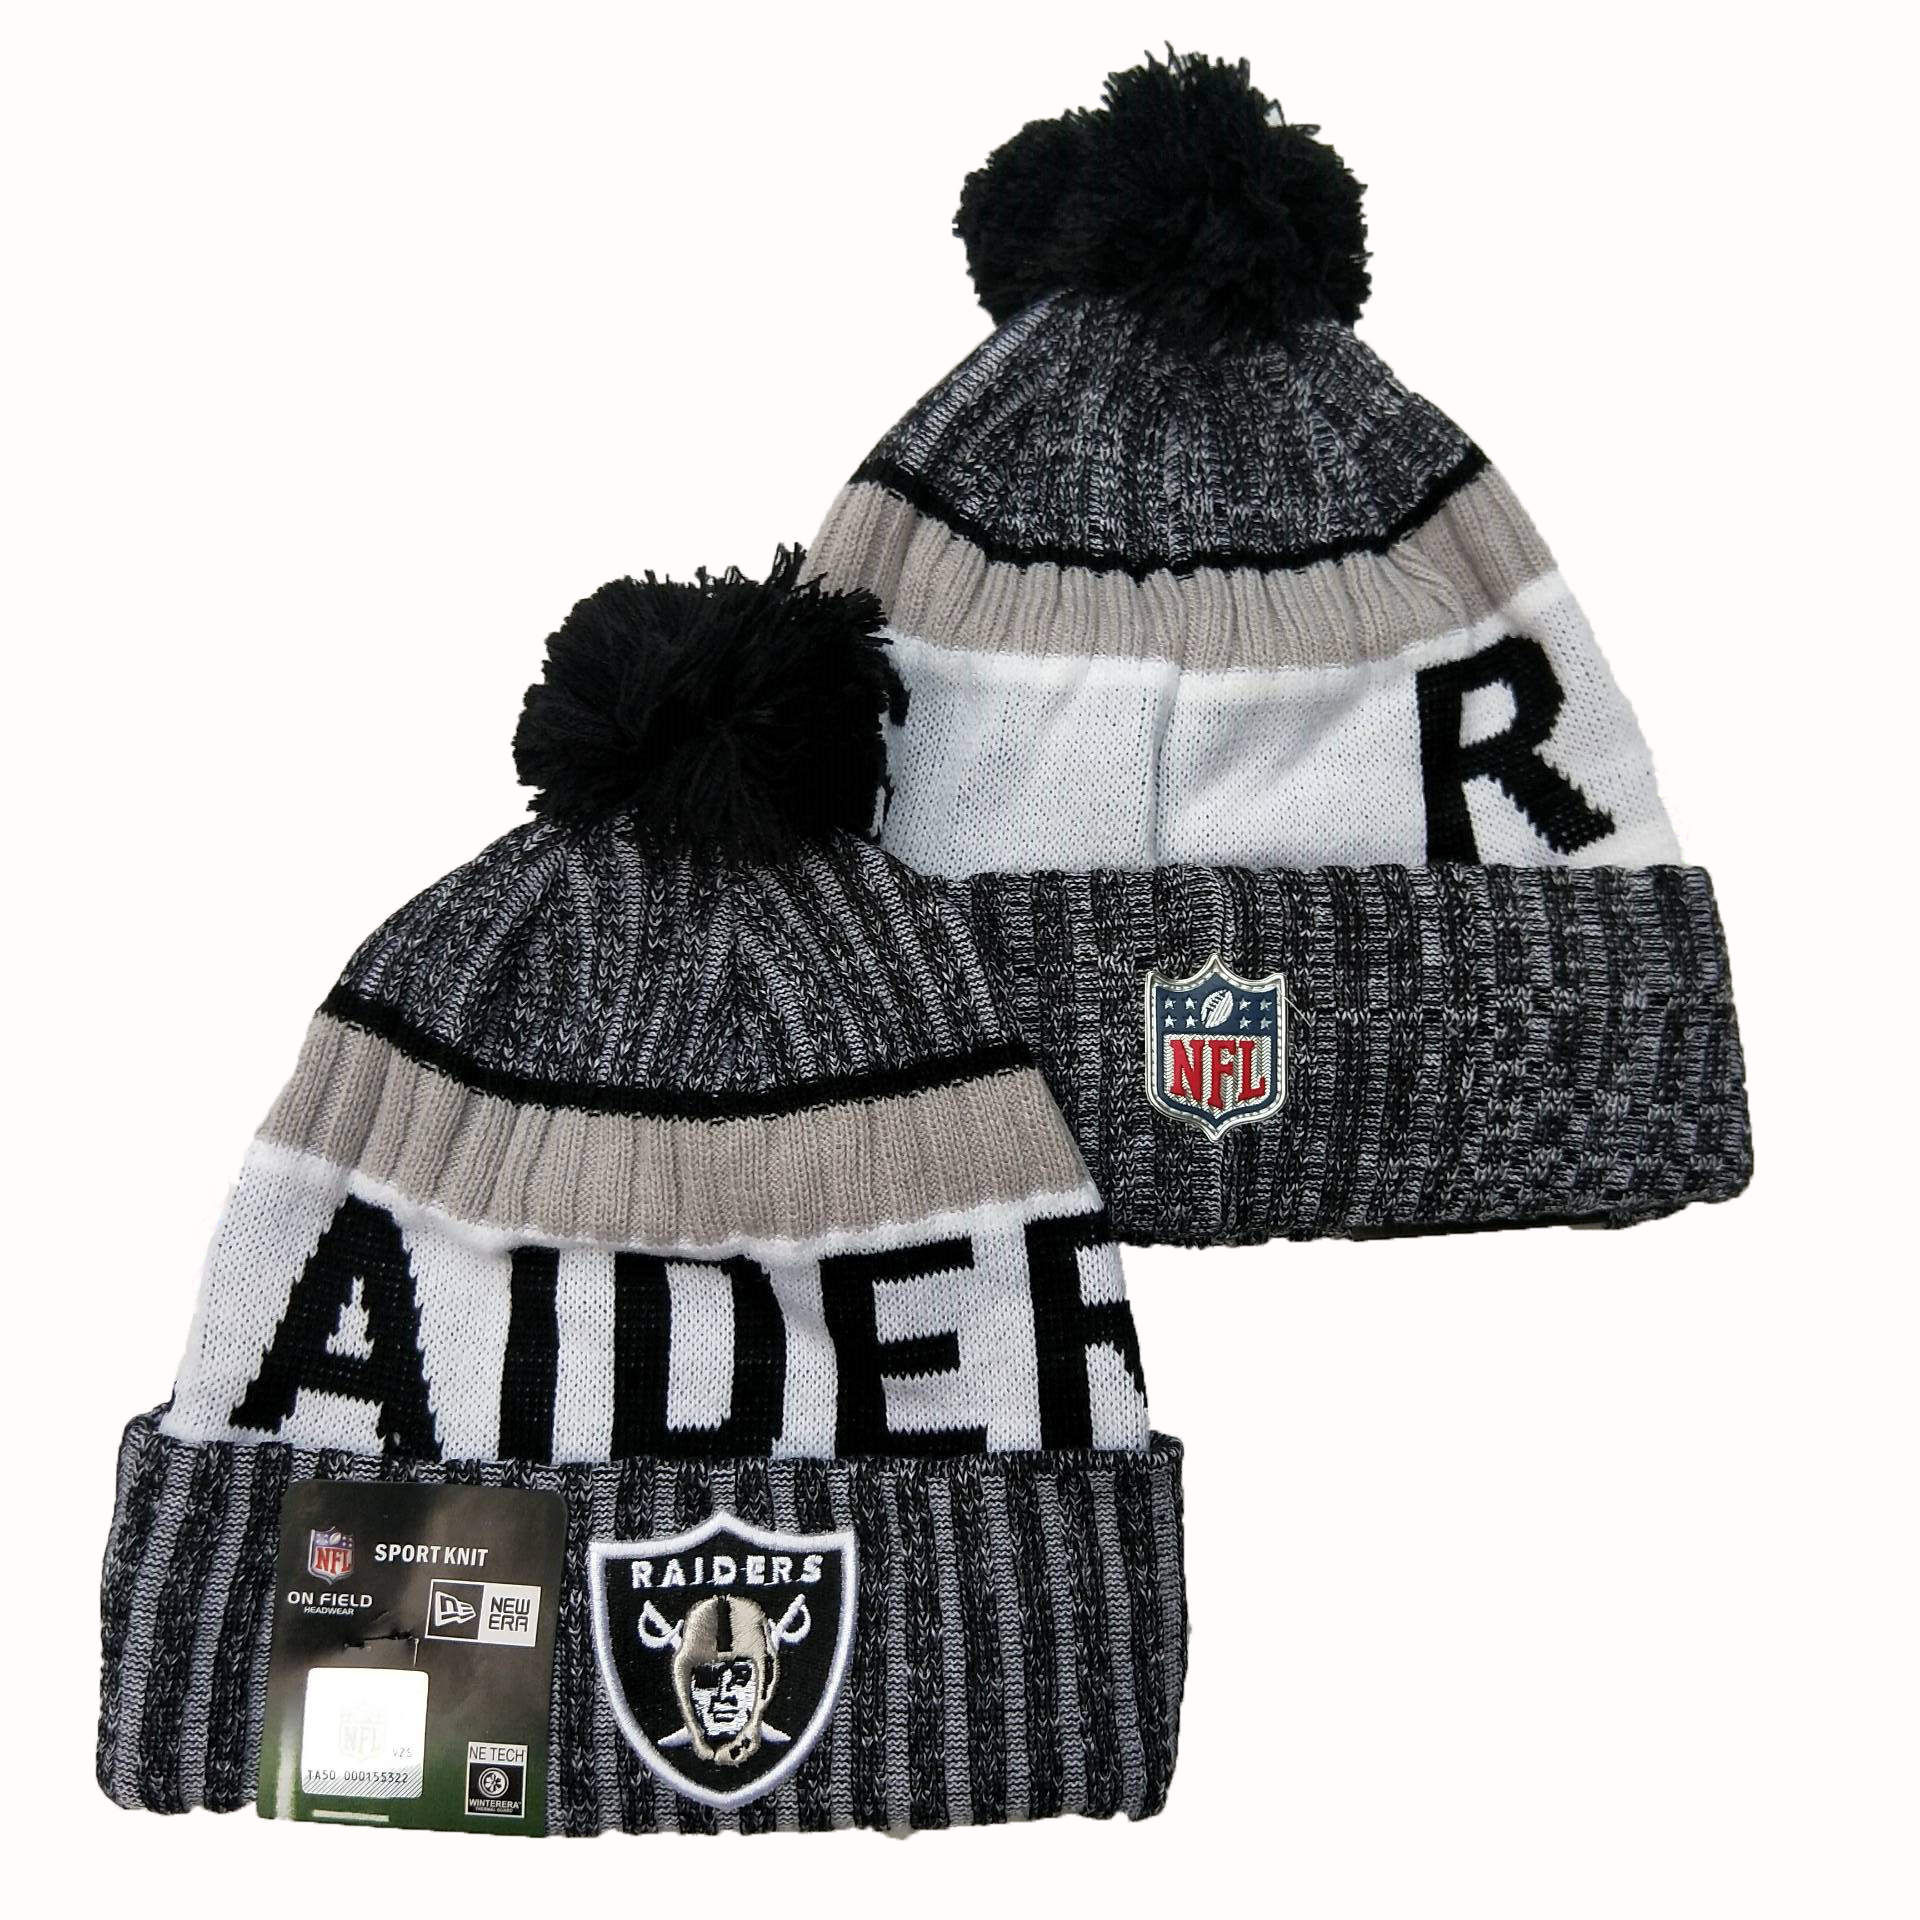 Las Vegas Raiders Knit Hats 071